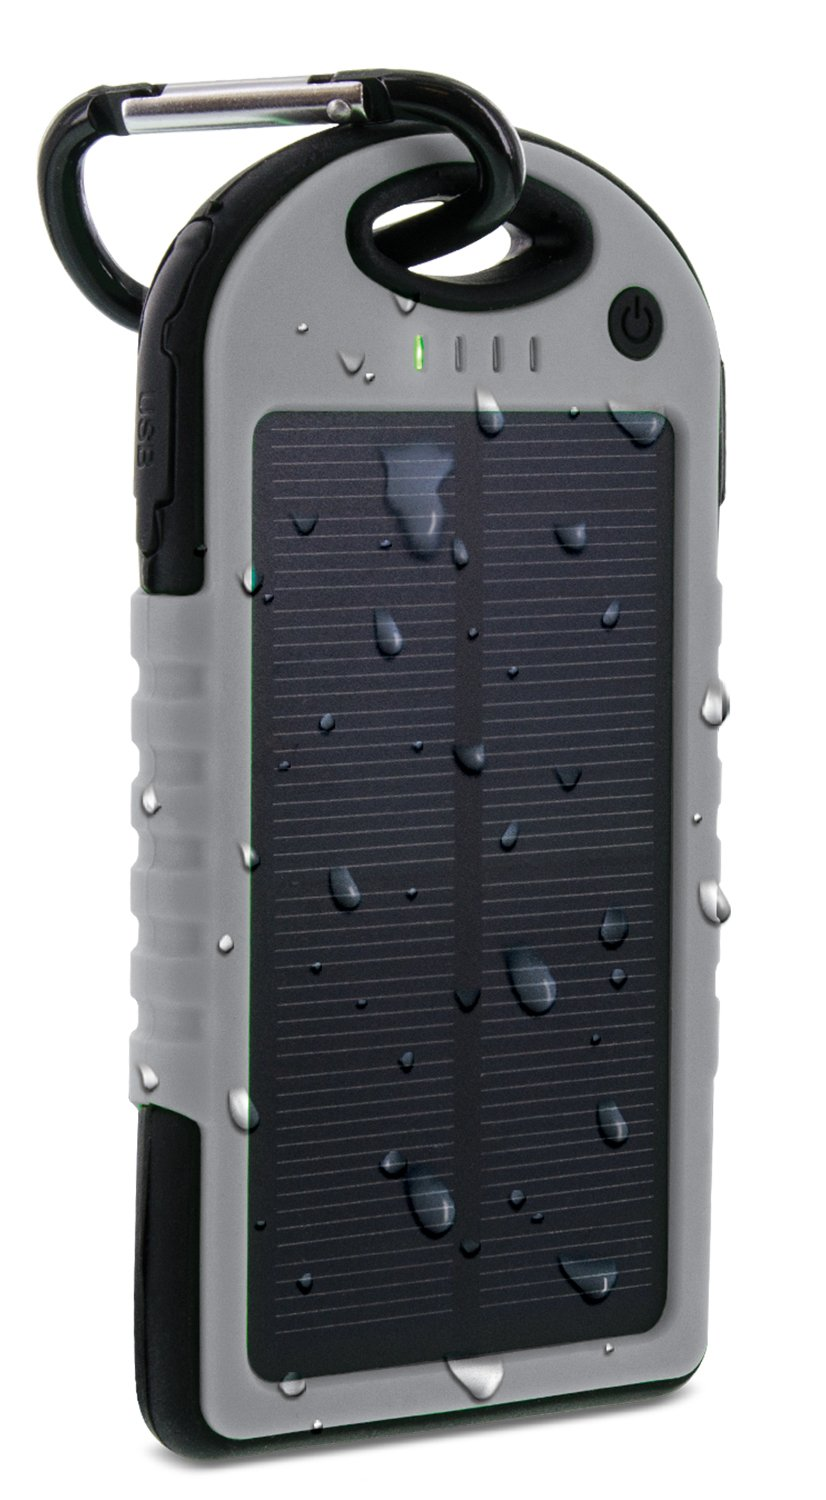 Aduro PowerUp Solar Powered Rugged Backup Battery W/ Dual USB Ports, IPX4 Certified Water Resistant, Shock Proof, Dirt Proof, Snow Proof. 6000 mAh, 30+ Hrs Talk Time Added (Grey/Black)